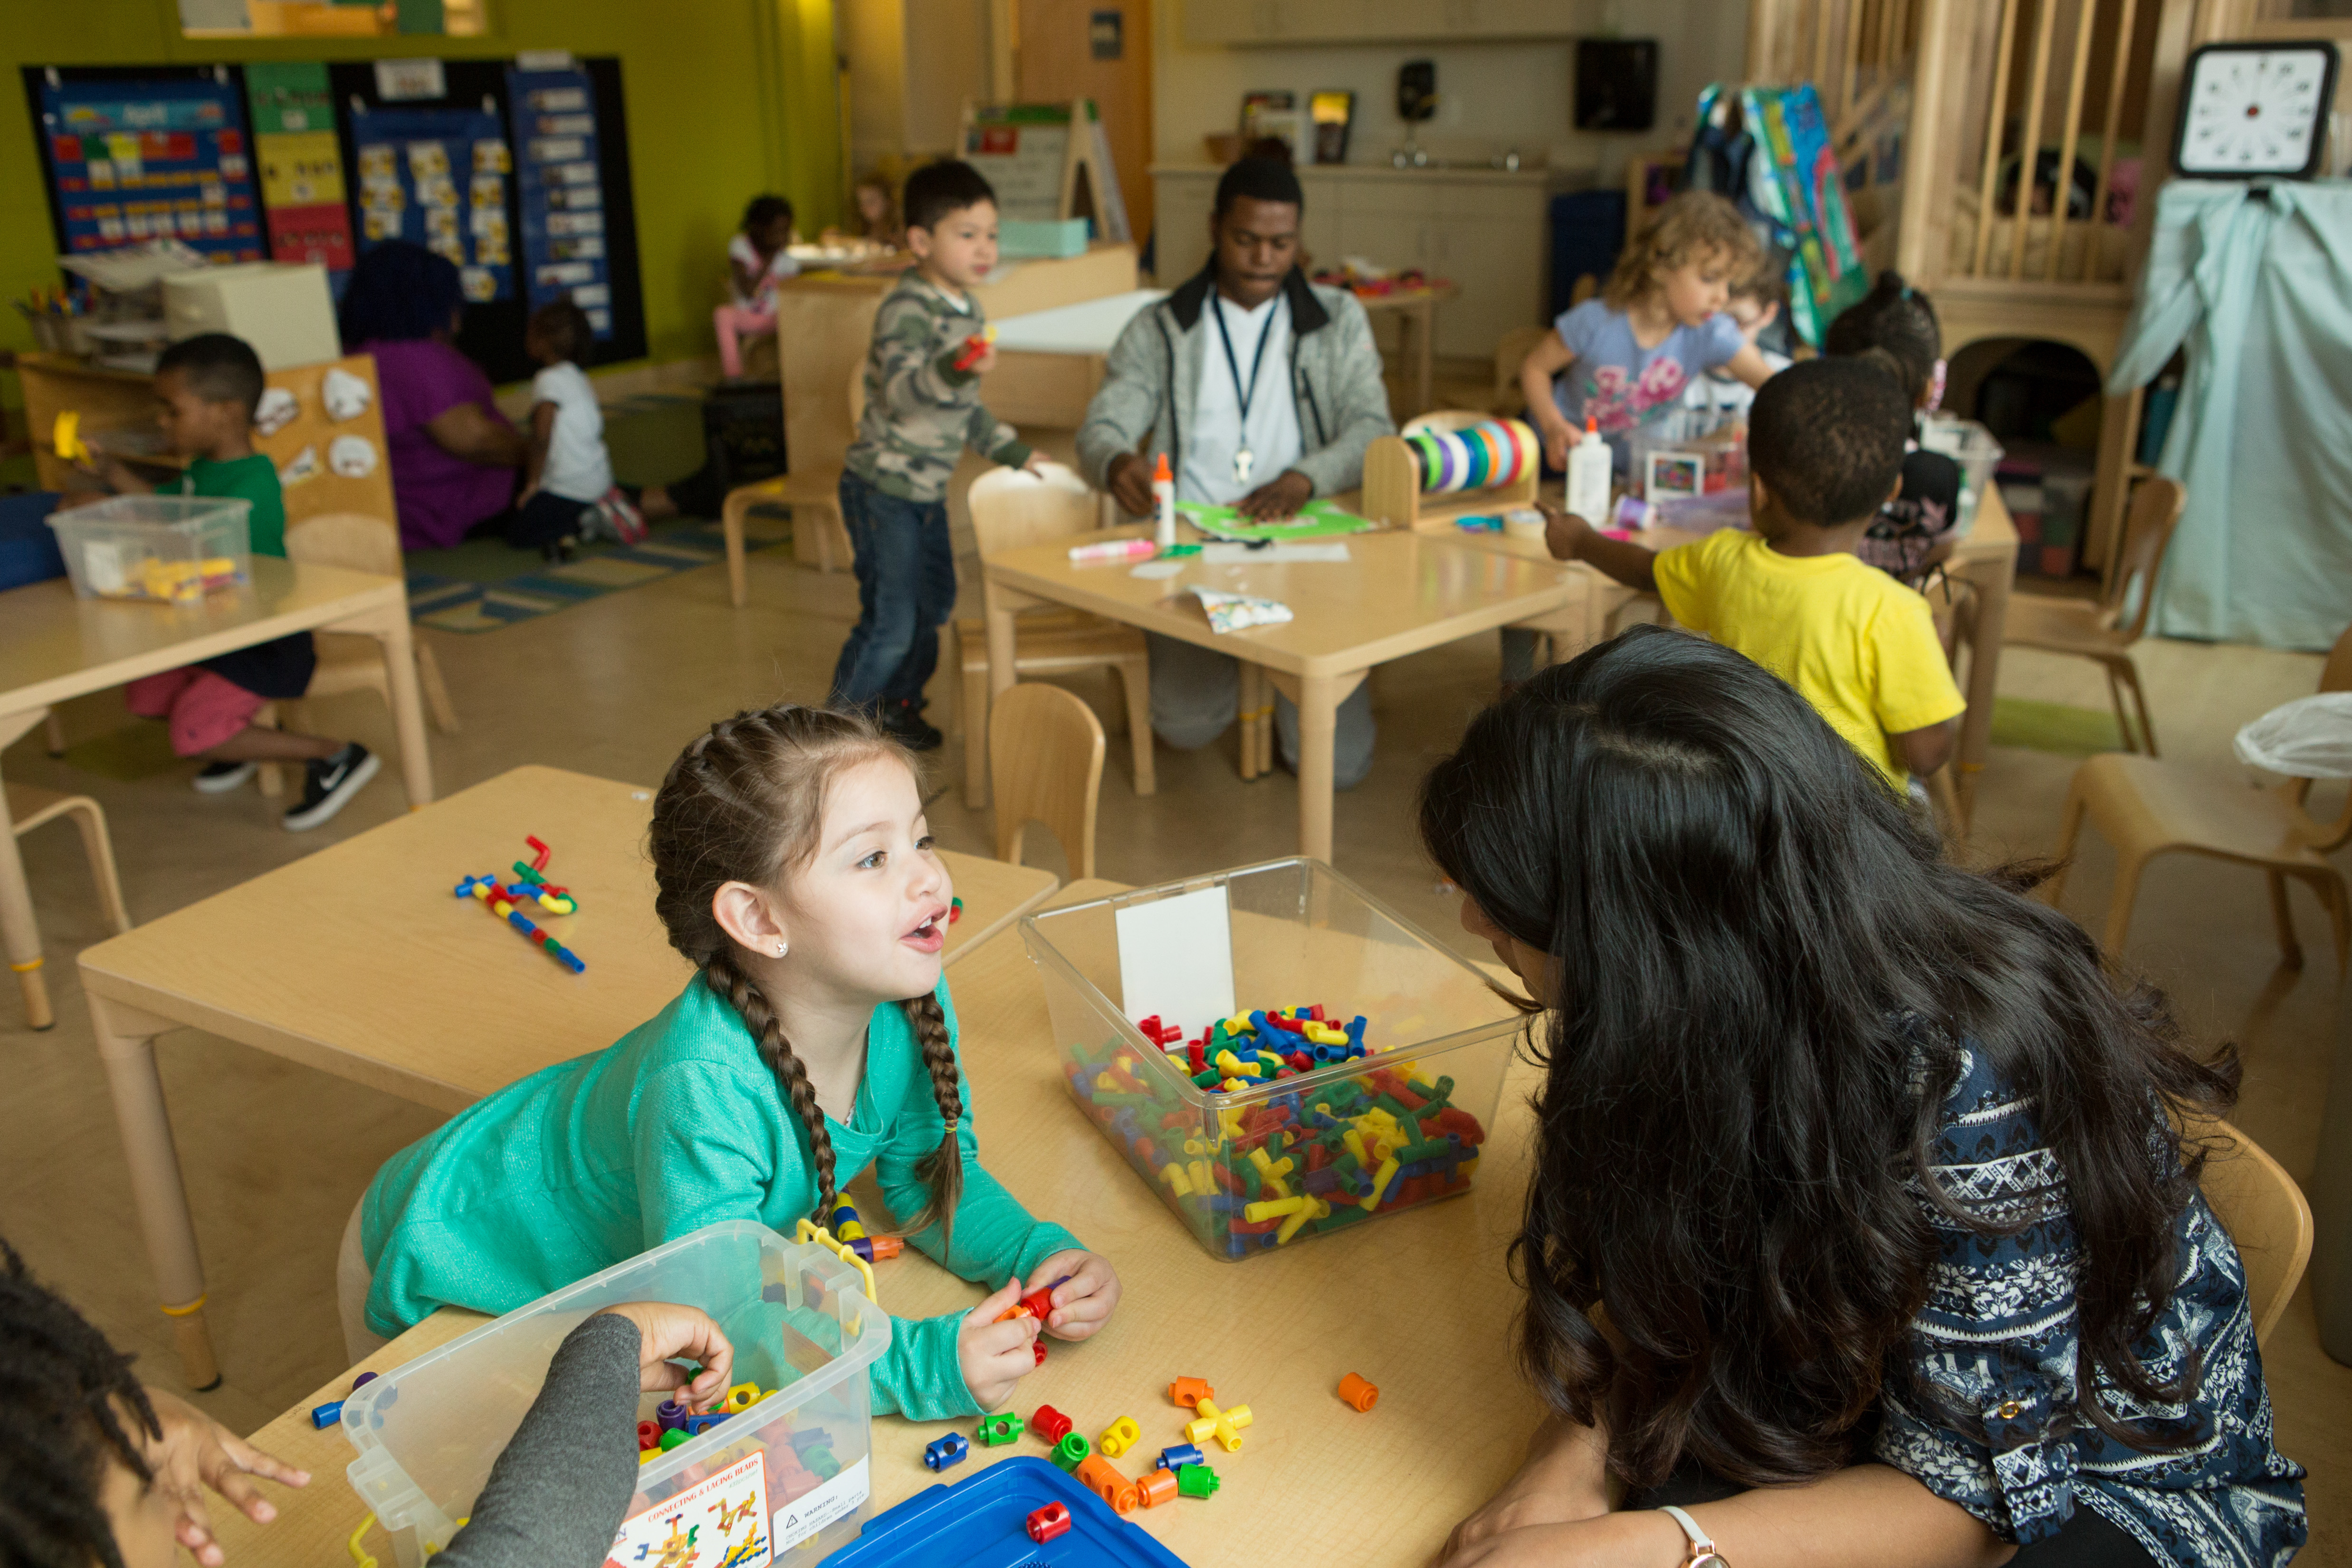 In a preschool class, a girl wearing a green shirt and pigtail braids leans over a desk, where there's a bin full of building blocks, to talk to a woman who also leans in to listen.